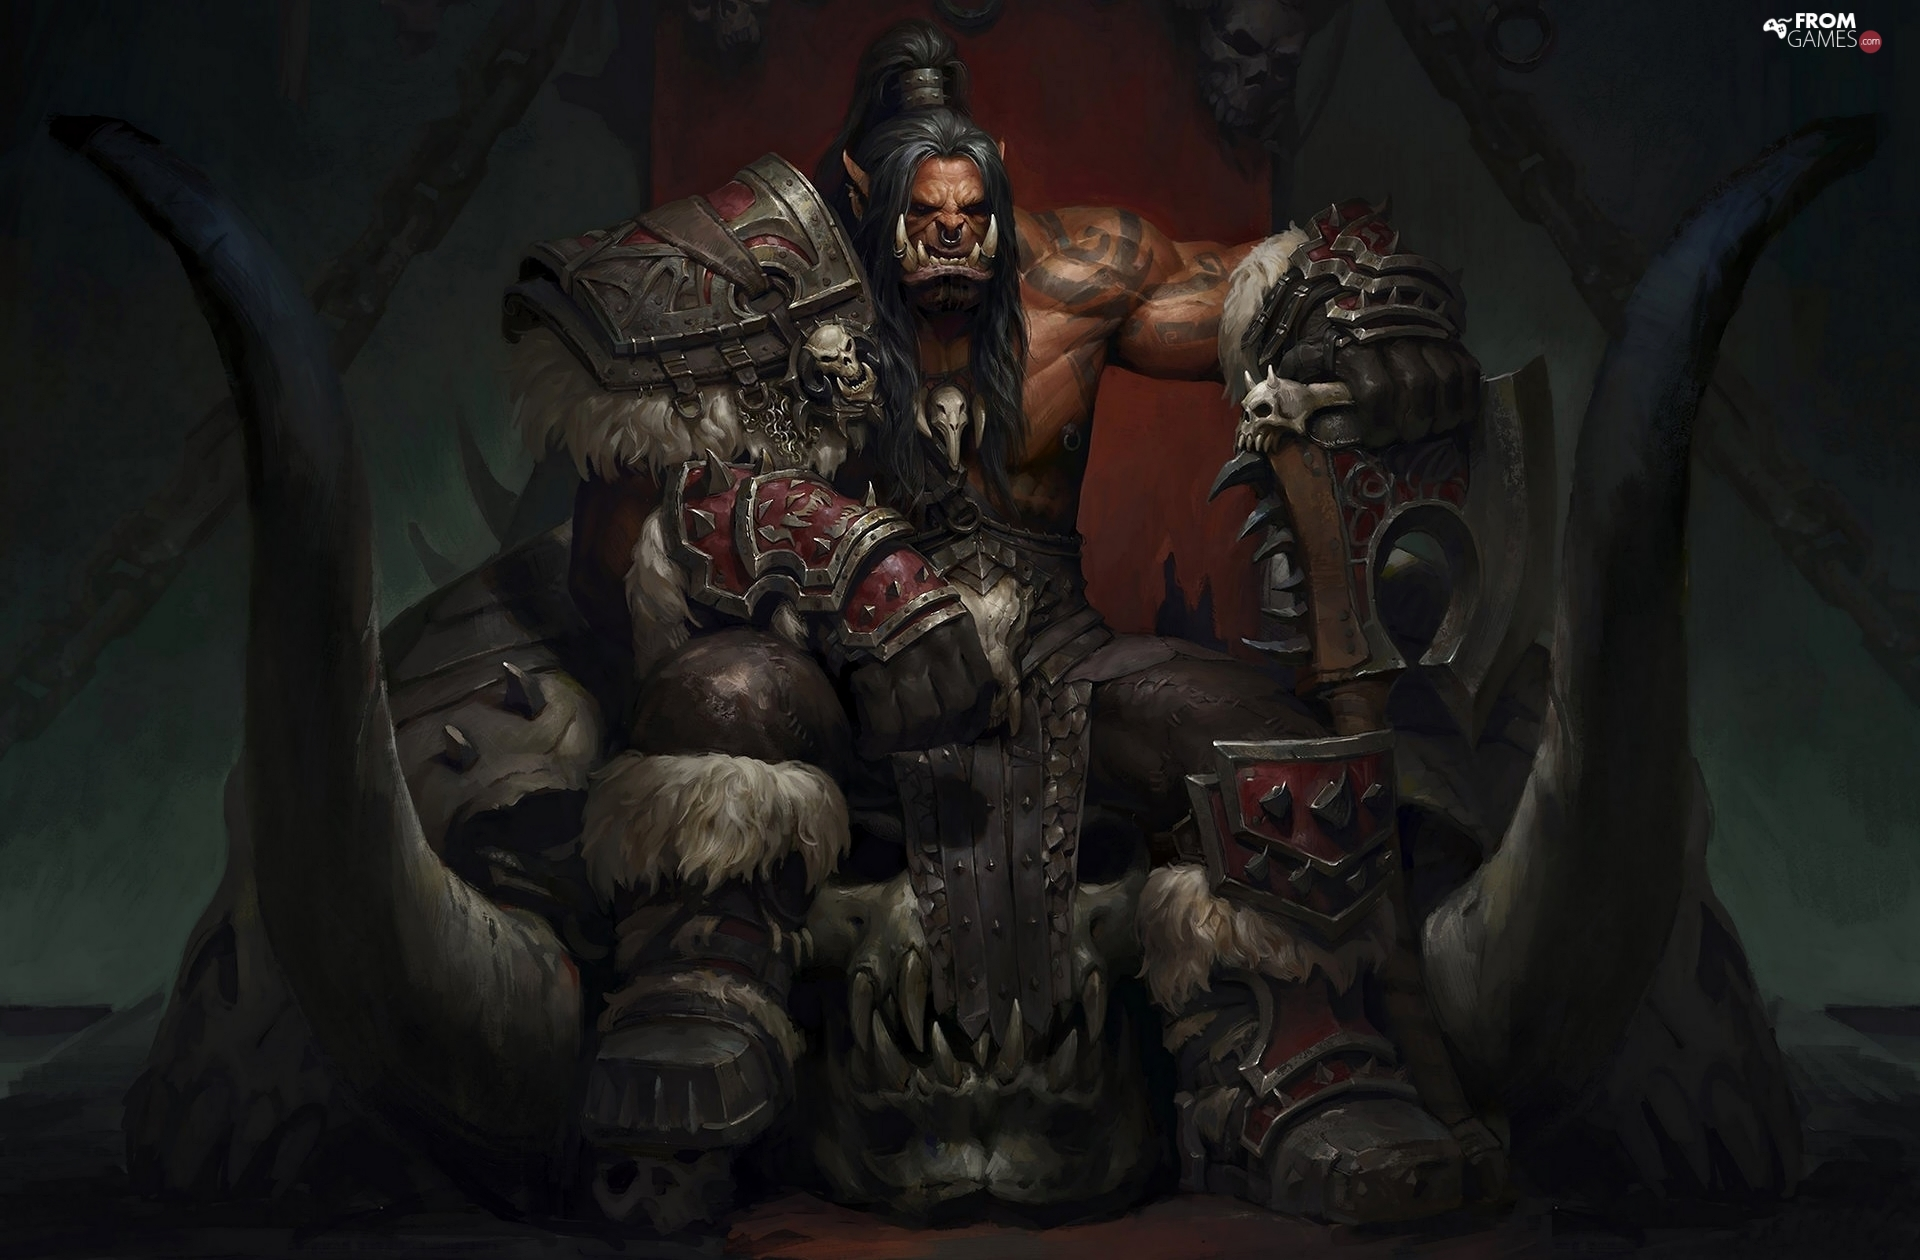 World of Warcraft: Warlords of Draenor, Grommash Hellscream, the throne, Ork